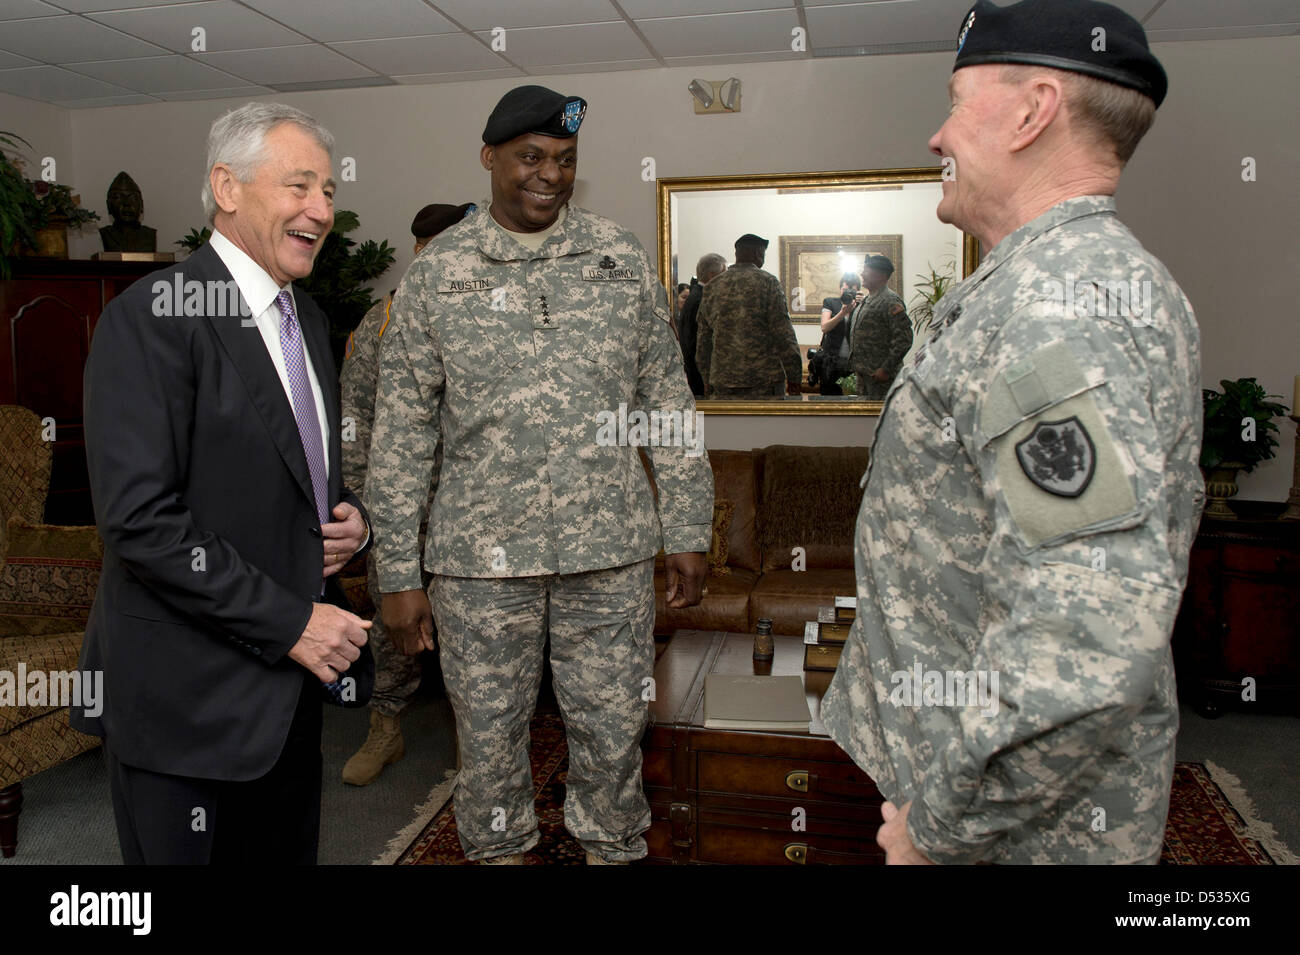 US Secretary of Defense Chuck Hagel laughs with General Lloyd Austin (center) and Joint Chiefs General Martin Dempsey - Stock Image